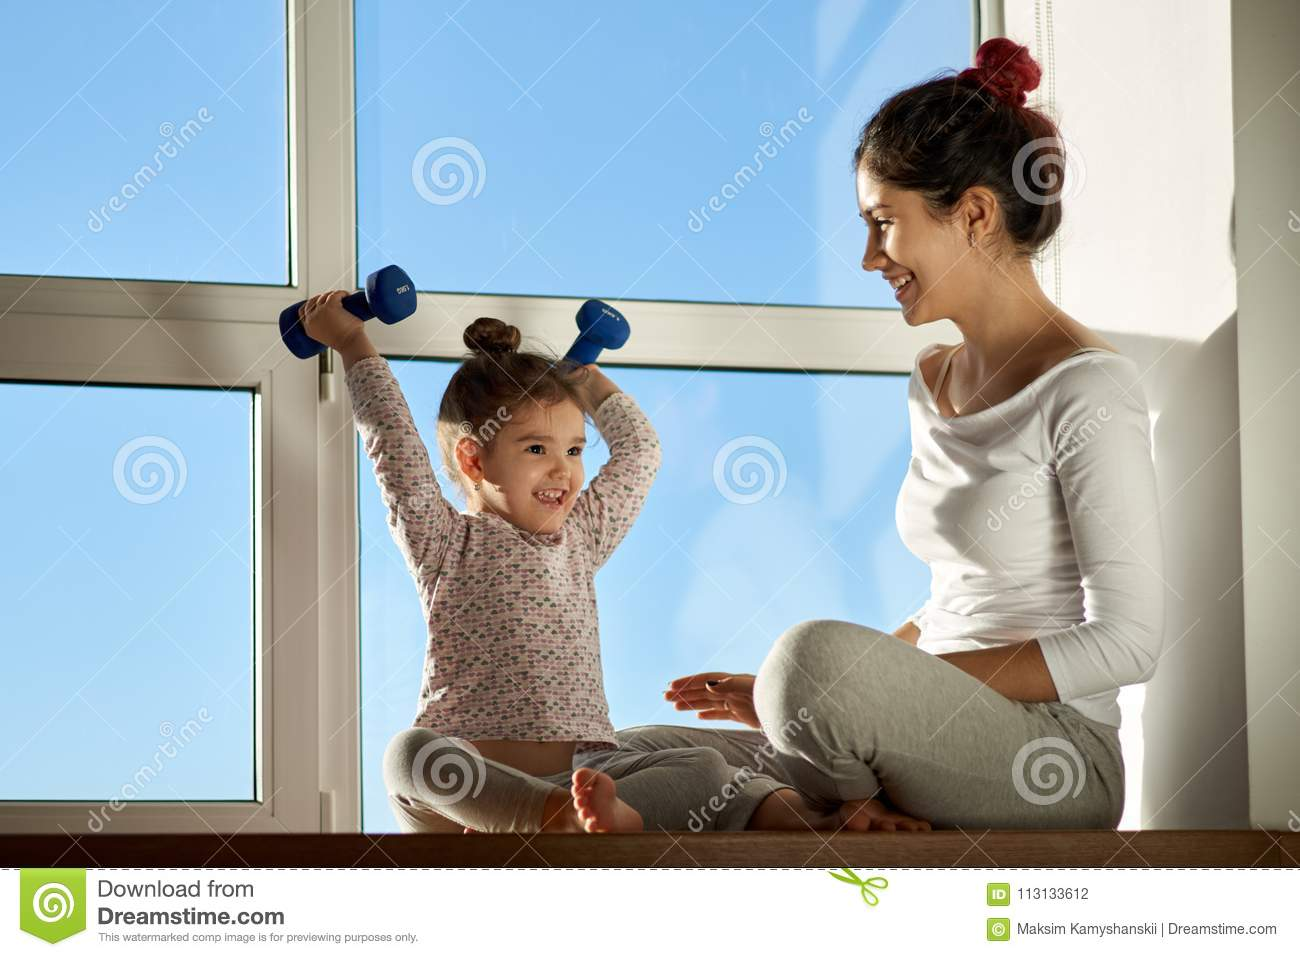 Little girl child happily raises on a dumbbell and smiles, showing off his achievements to his mother.